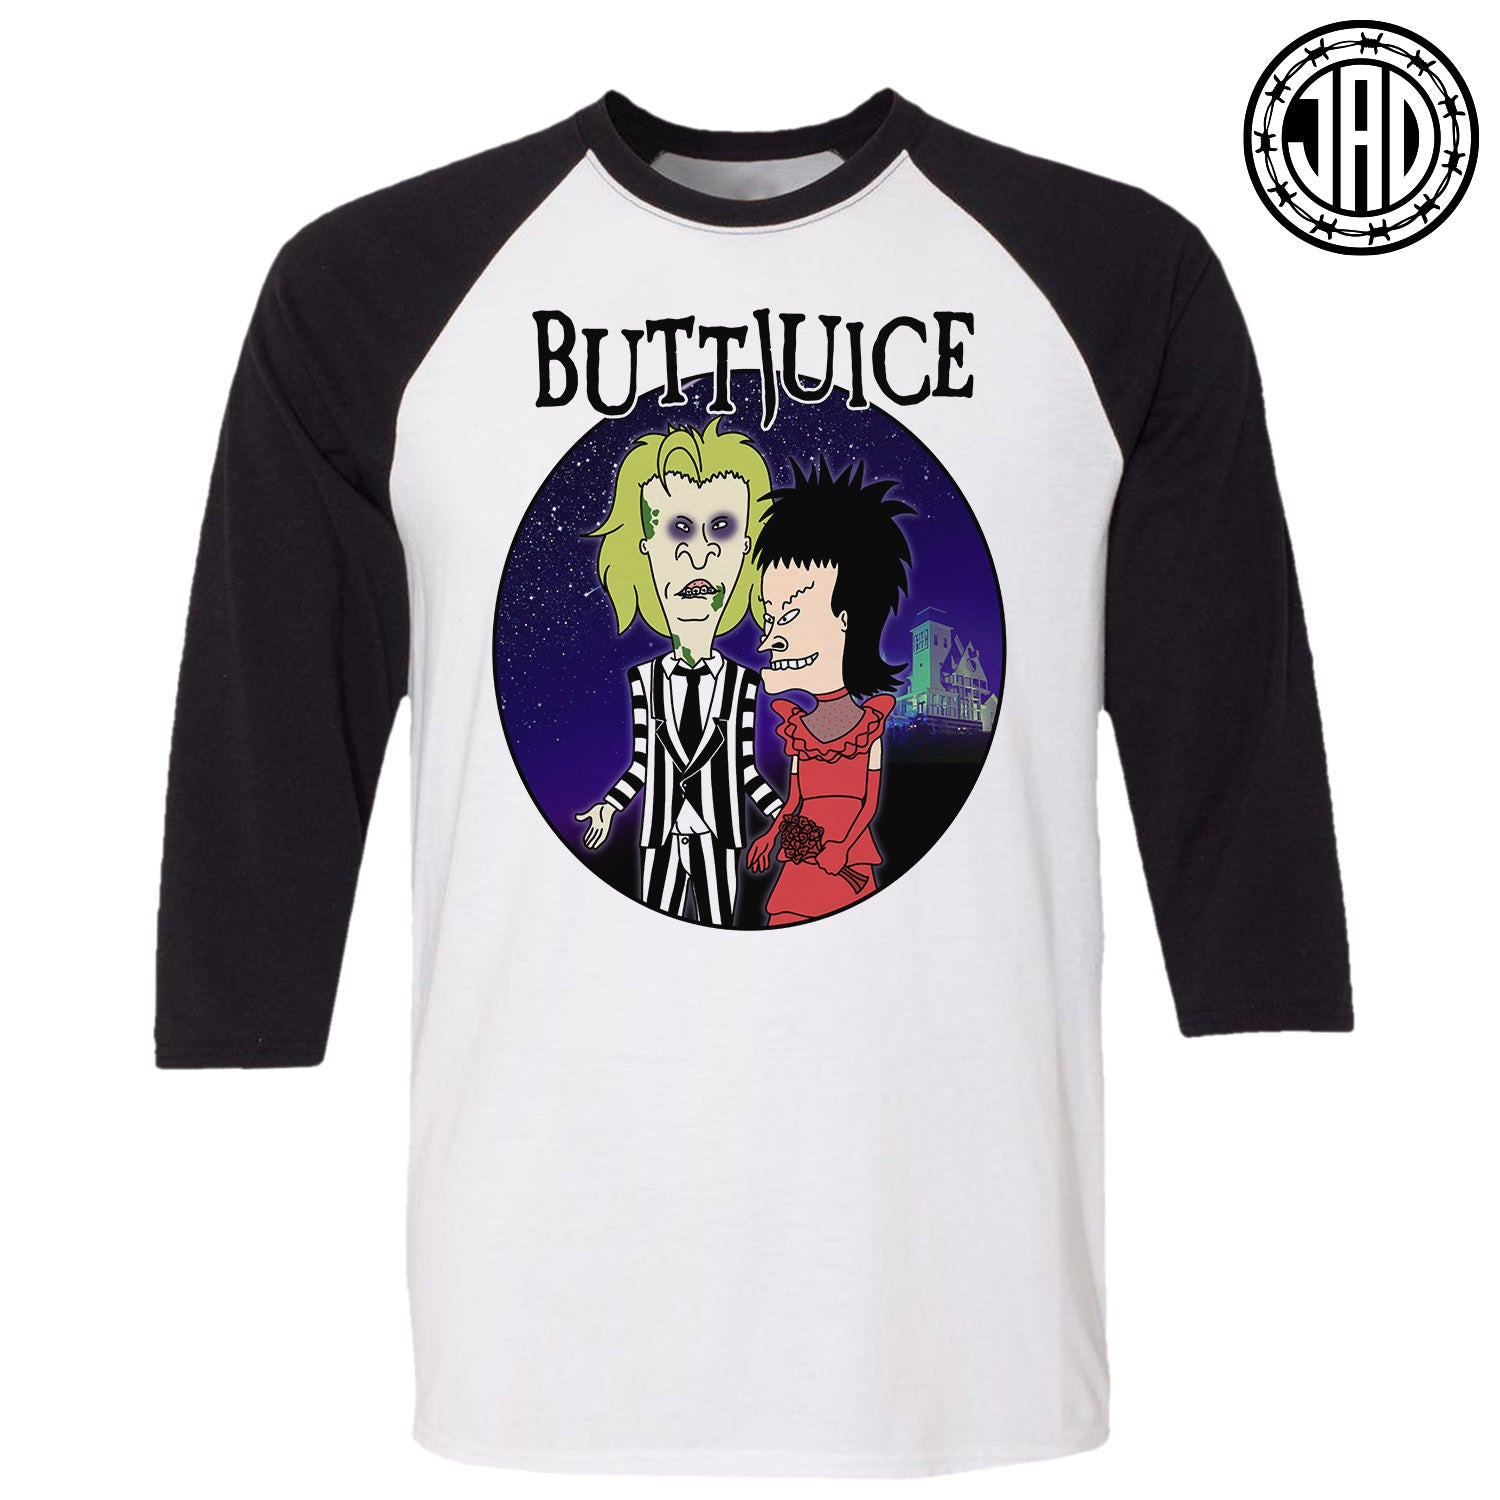 BUTTJUICE - Men's (Unisex) Baseball Tee